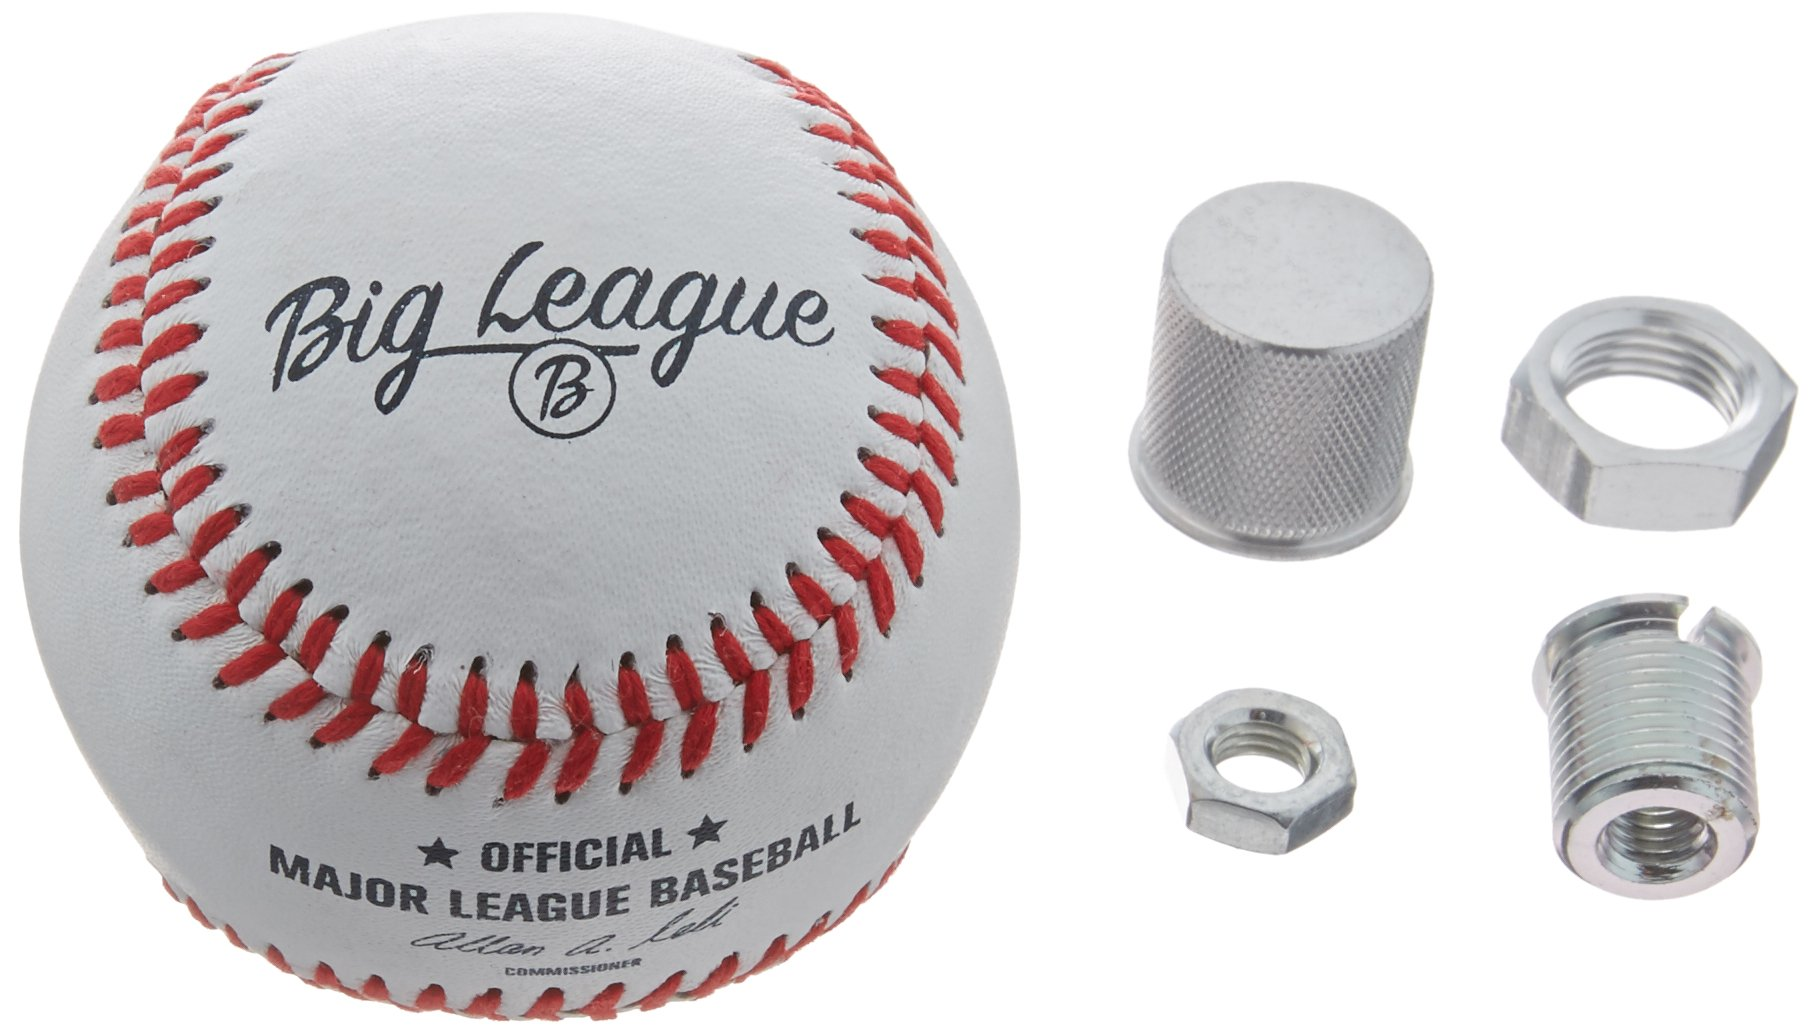 American Shifter 159051 Baseball Transmission Gear Shift Knob with M8 x1.25 Insert by American Shifter